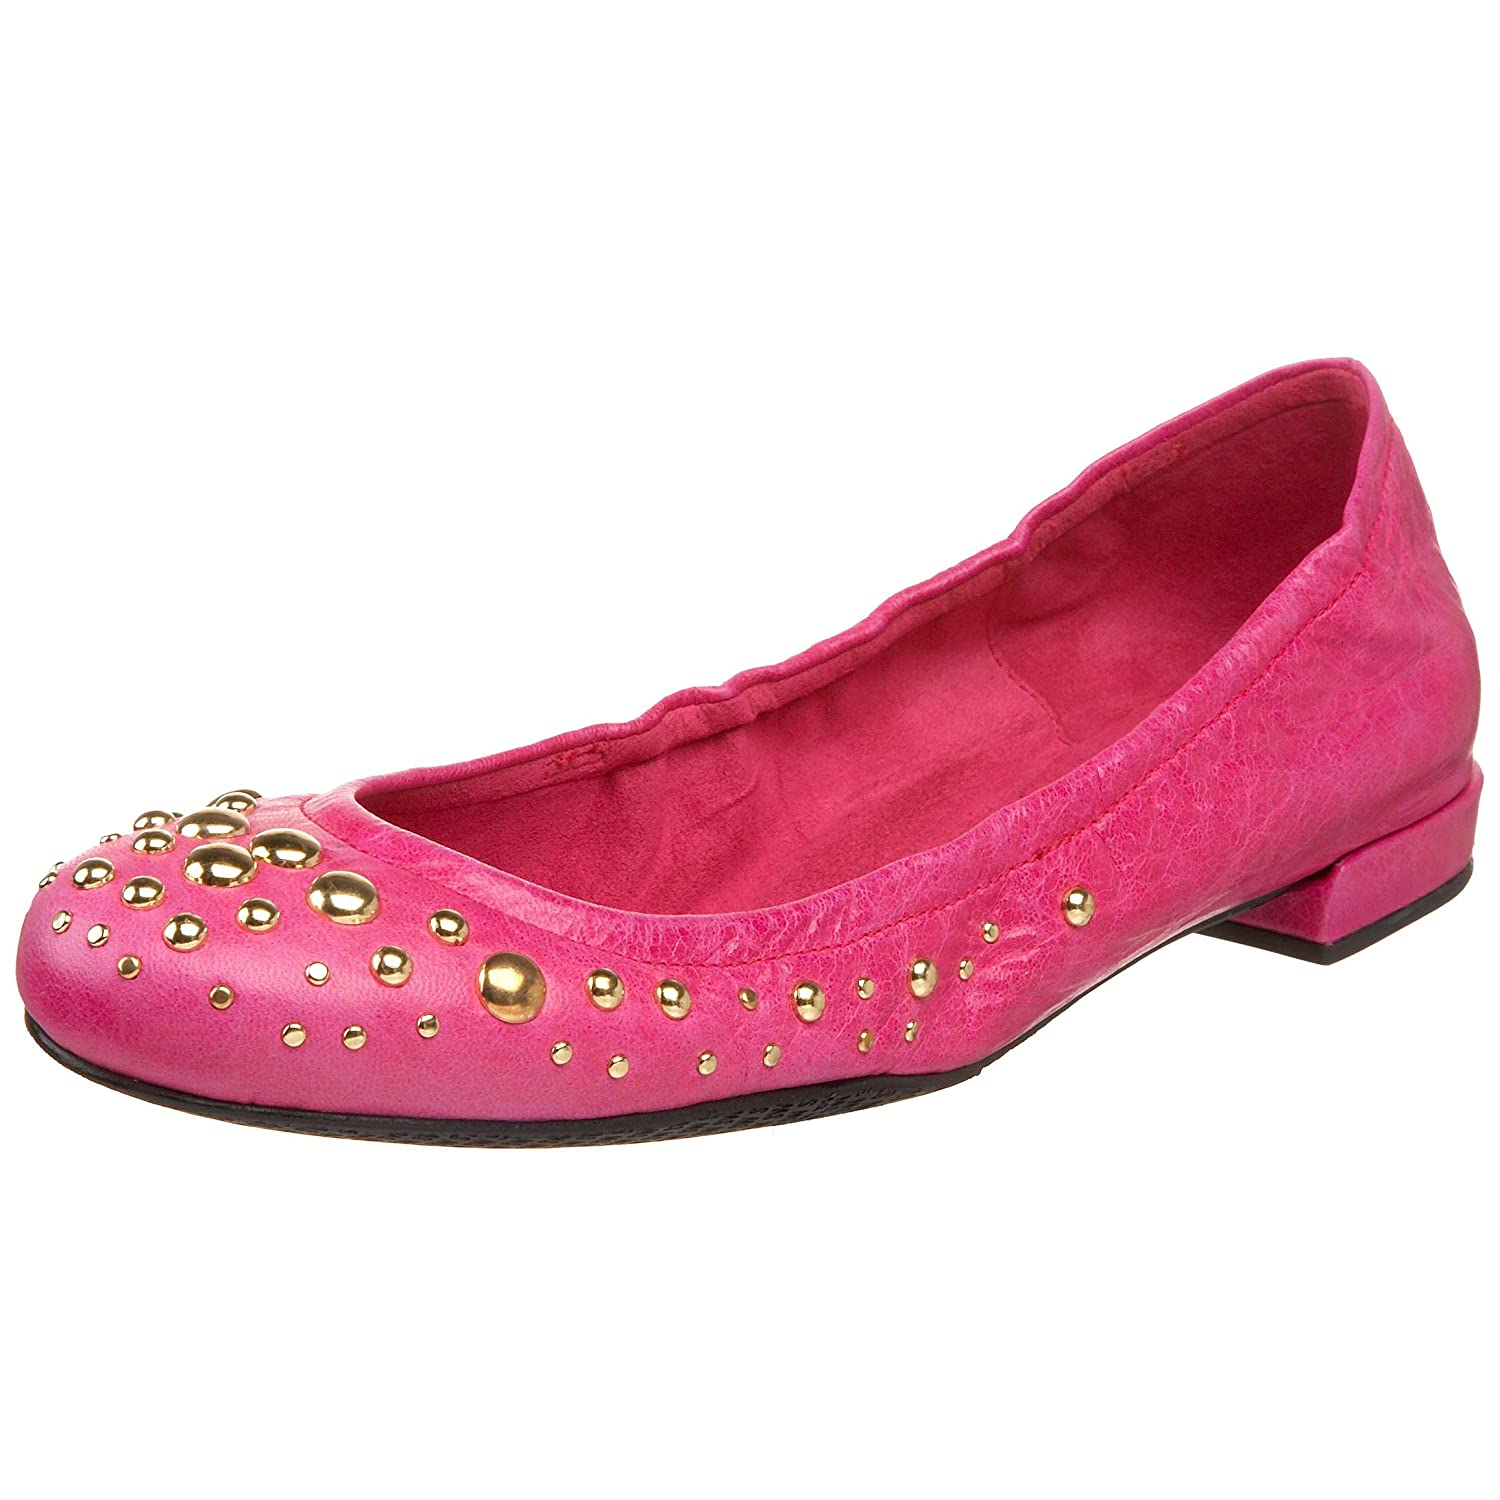 Teen Girls Guide to Finding Great School Shoes